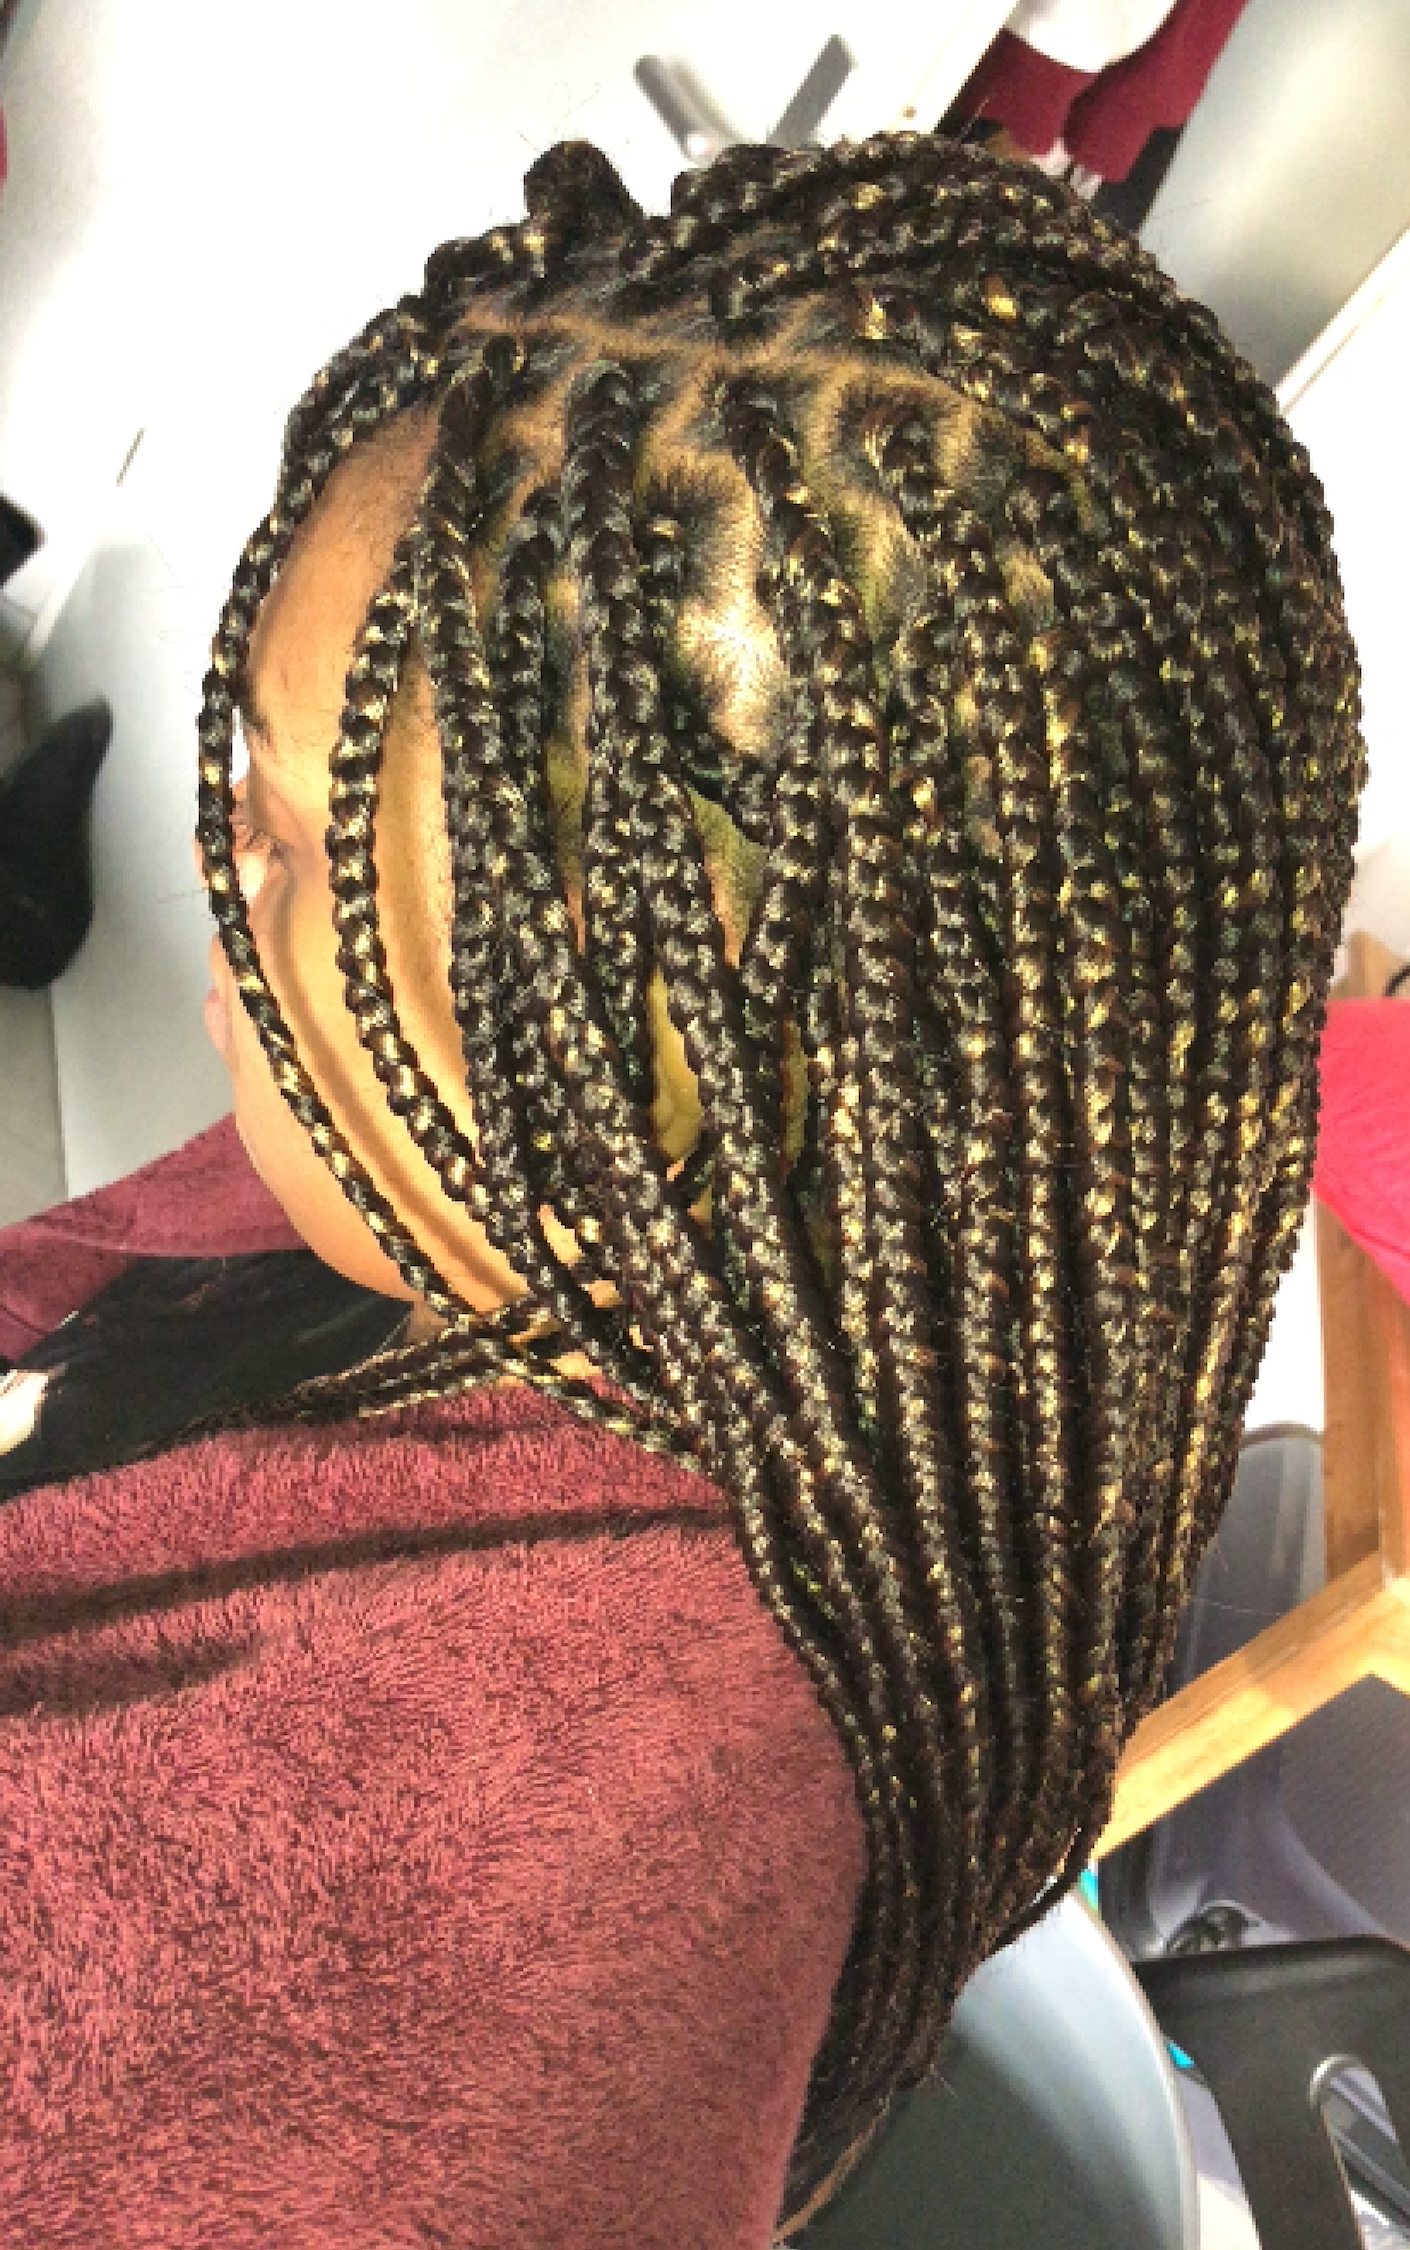 salon de coiffure afro tresse tresses box braids crochet braids vanilles tissages paris 75 77 78 91 92 93 94 95 ZKKVXHCN